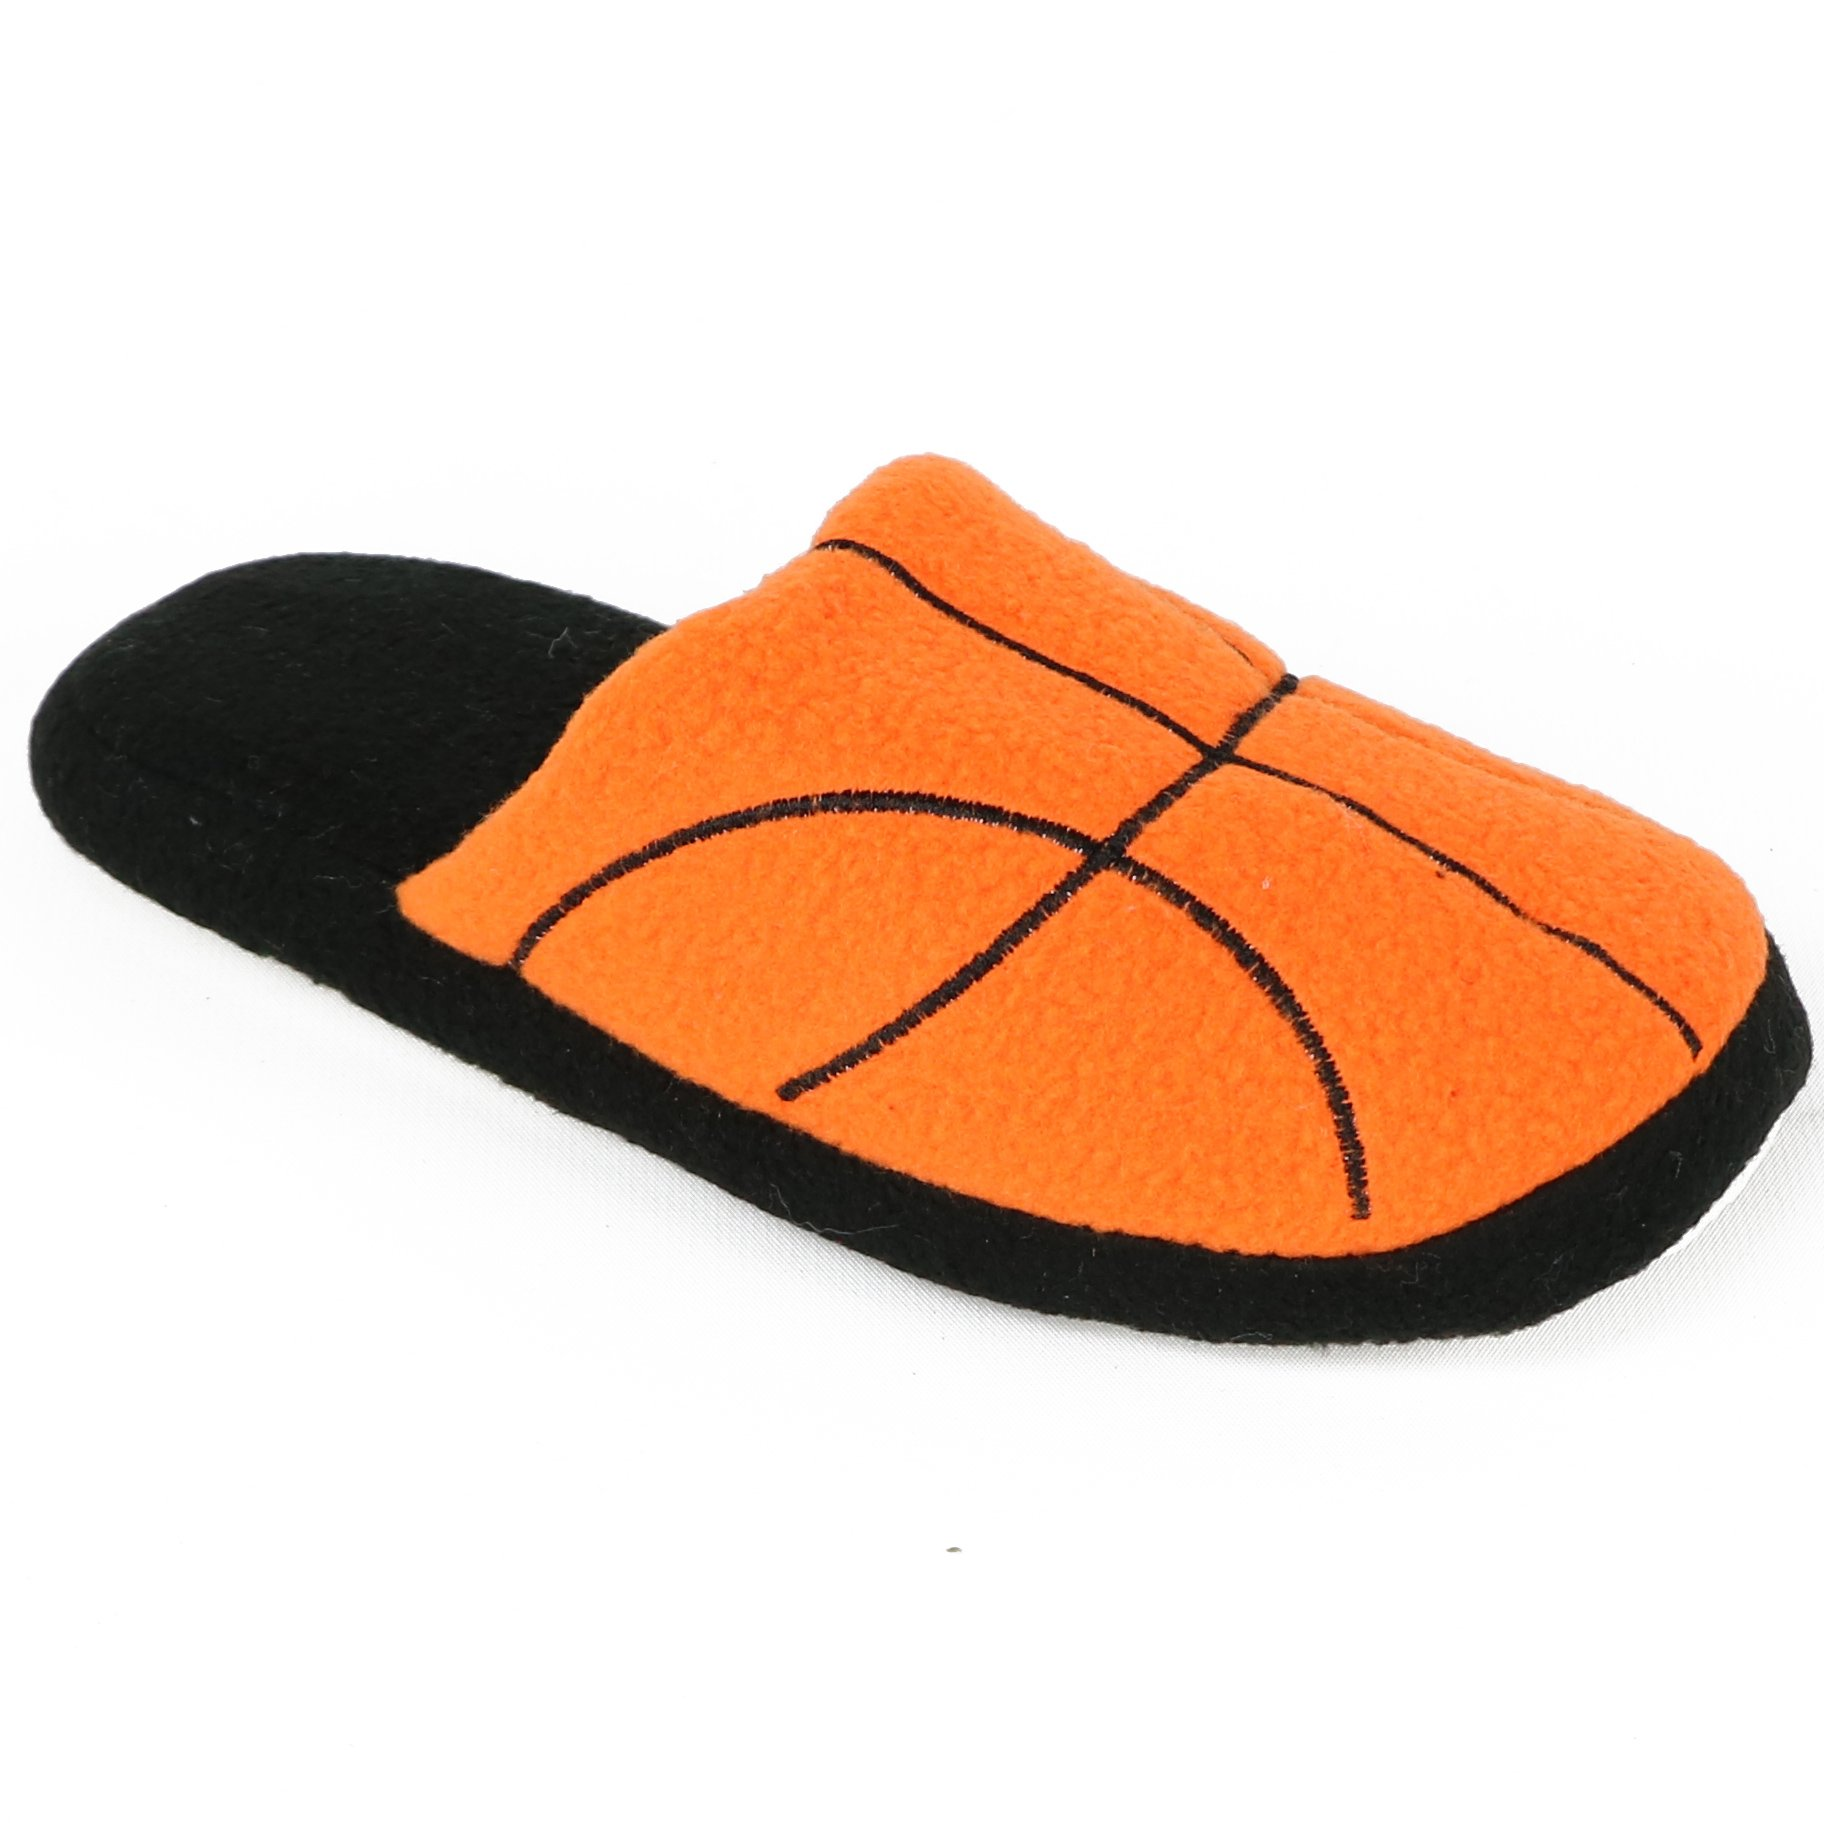 Image of Sports Basketball Slippers for Boys